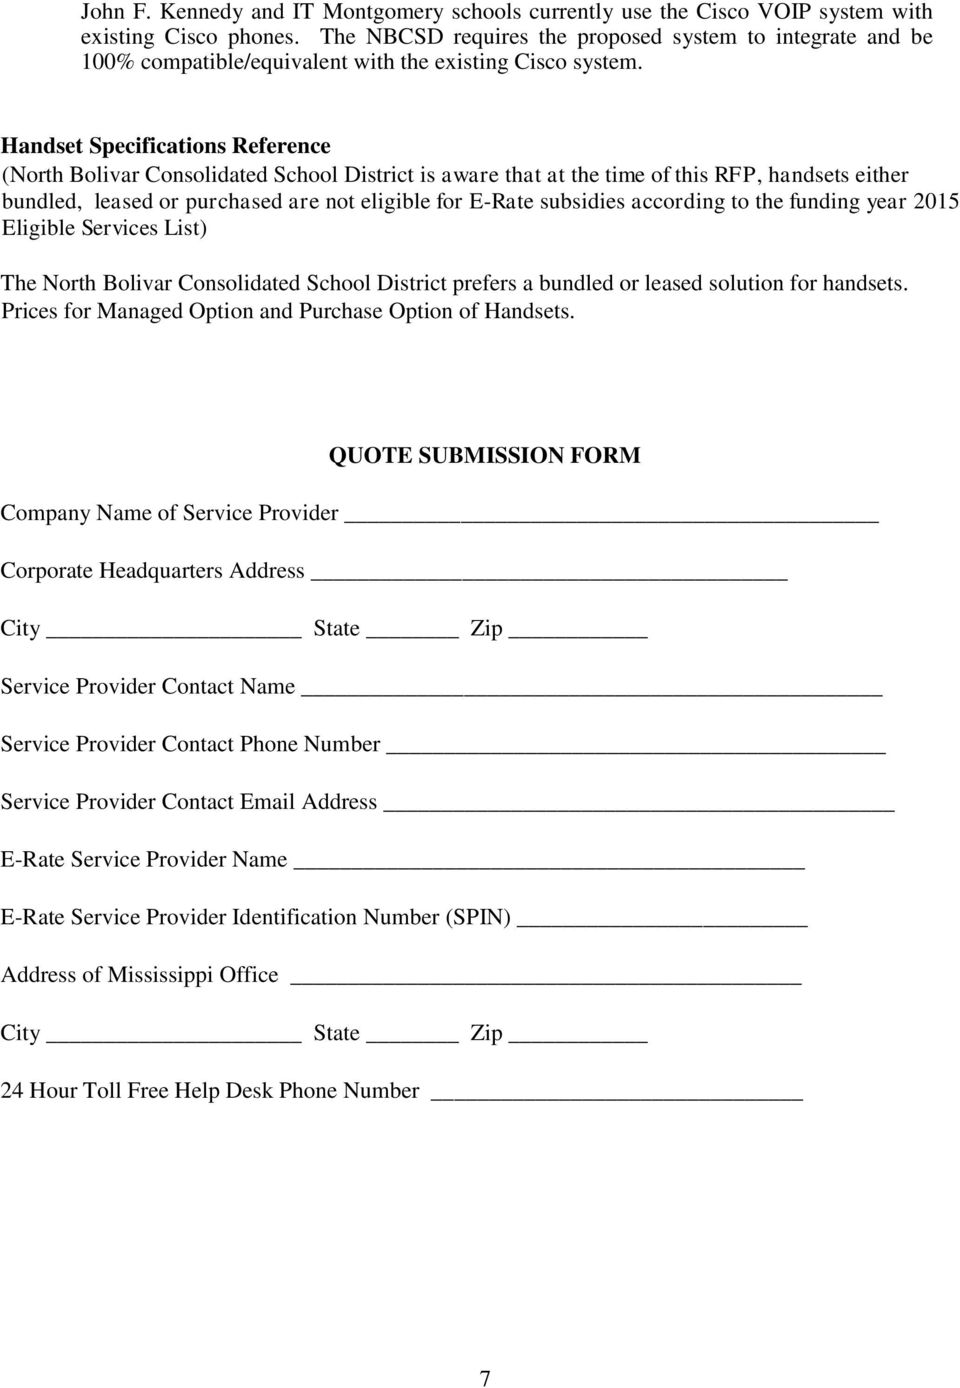 Handset Specifications Reference (North Bolivar Consolidated School District is aware that at the time of this RFP, handsets either bundled, leased or purchased are not eligible for E-Rate subsidies